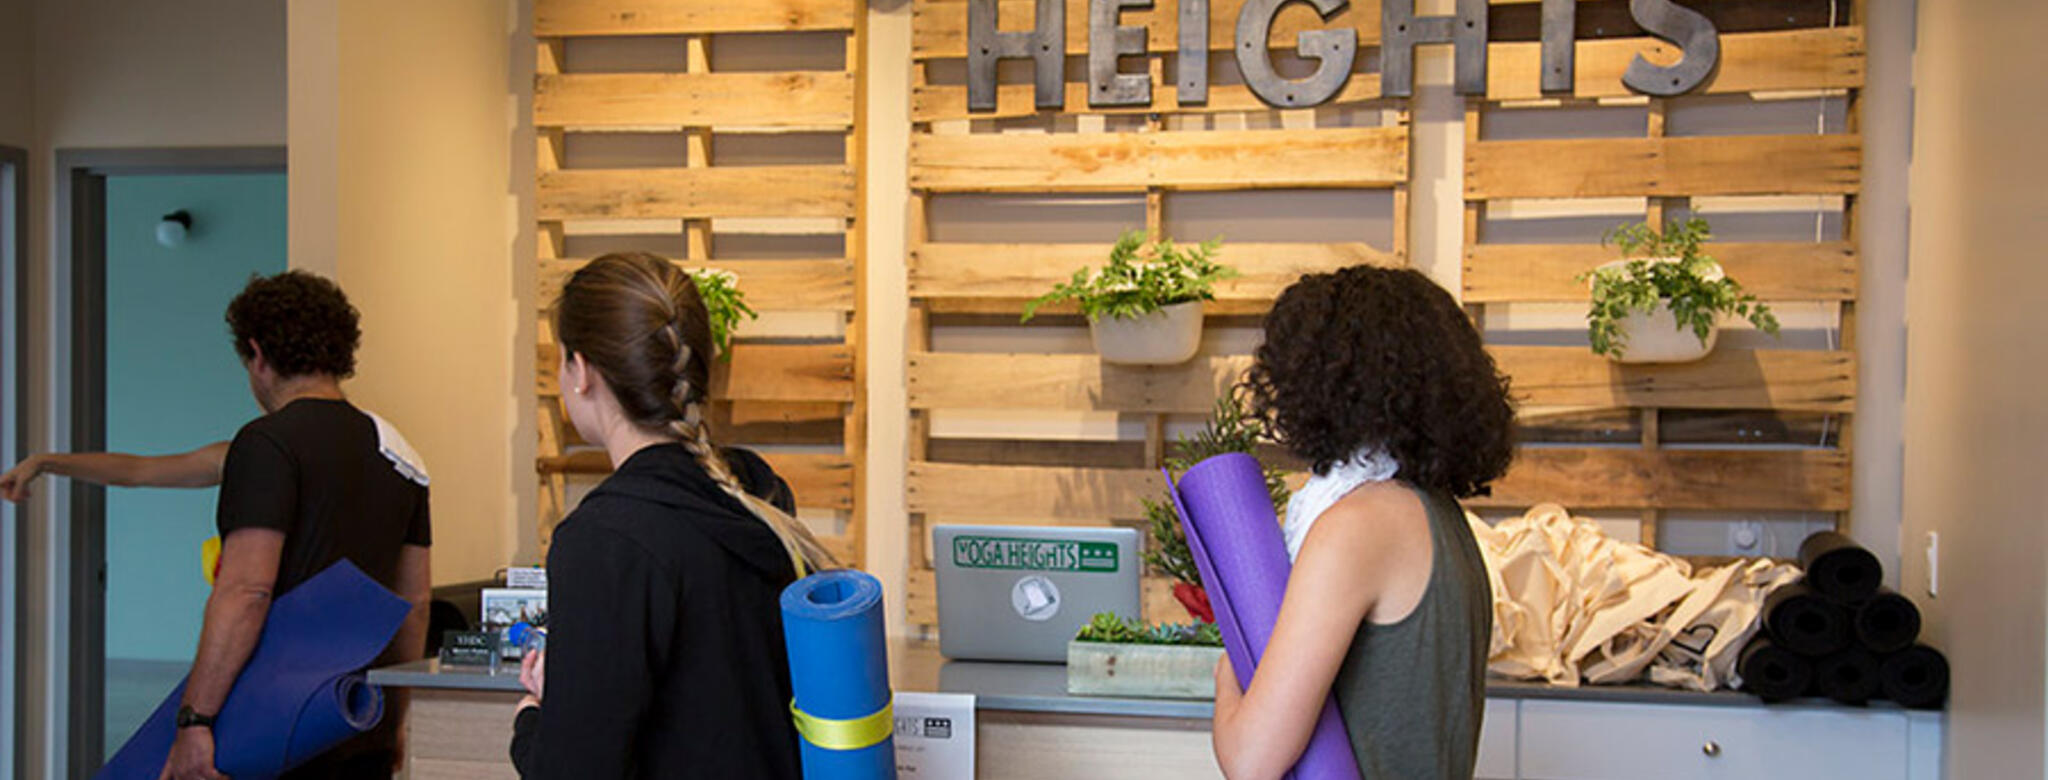 Students checking into class at Yoga Heights